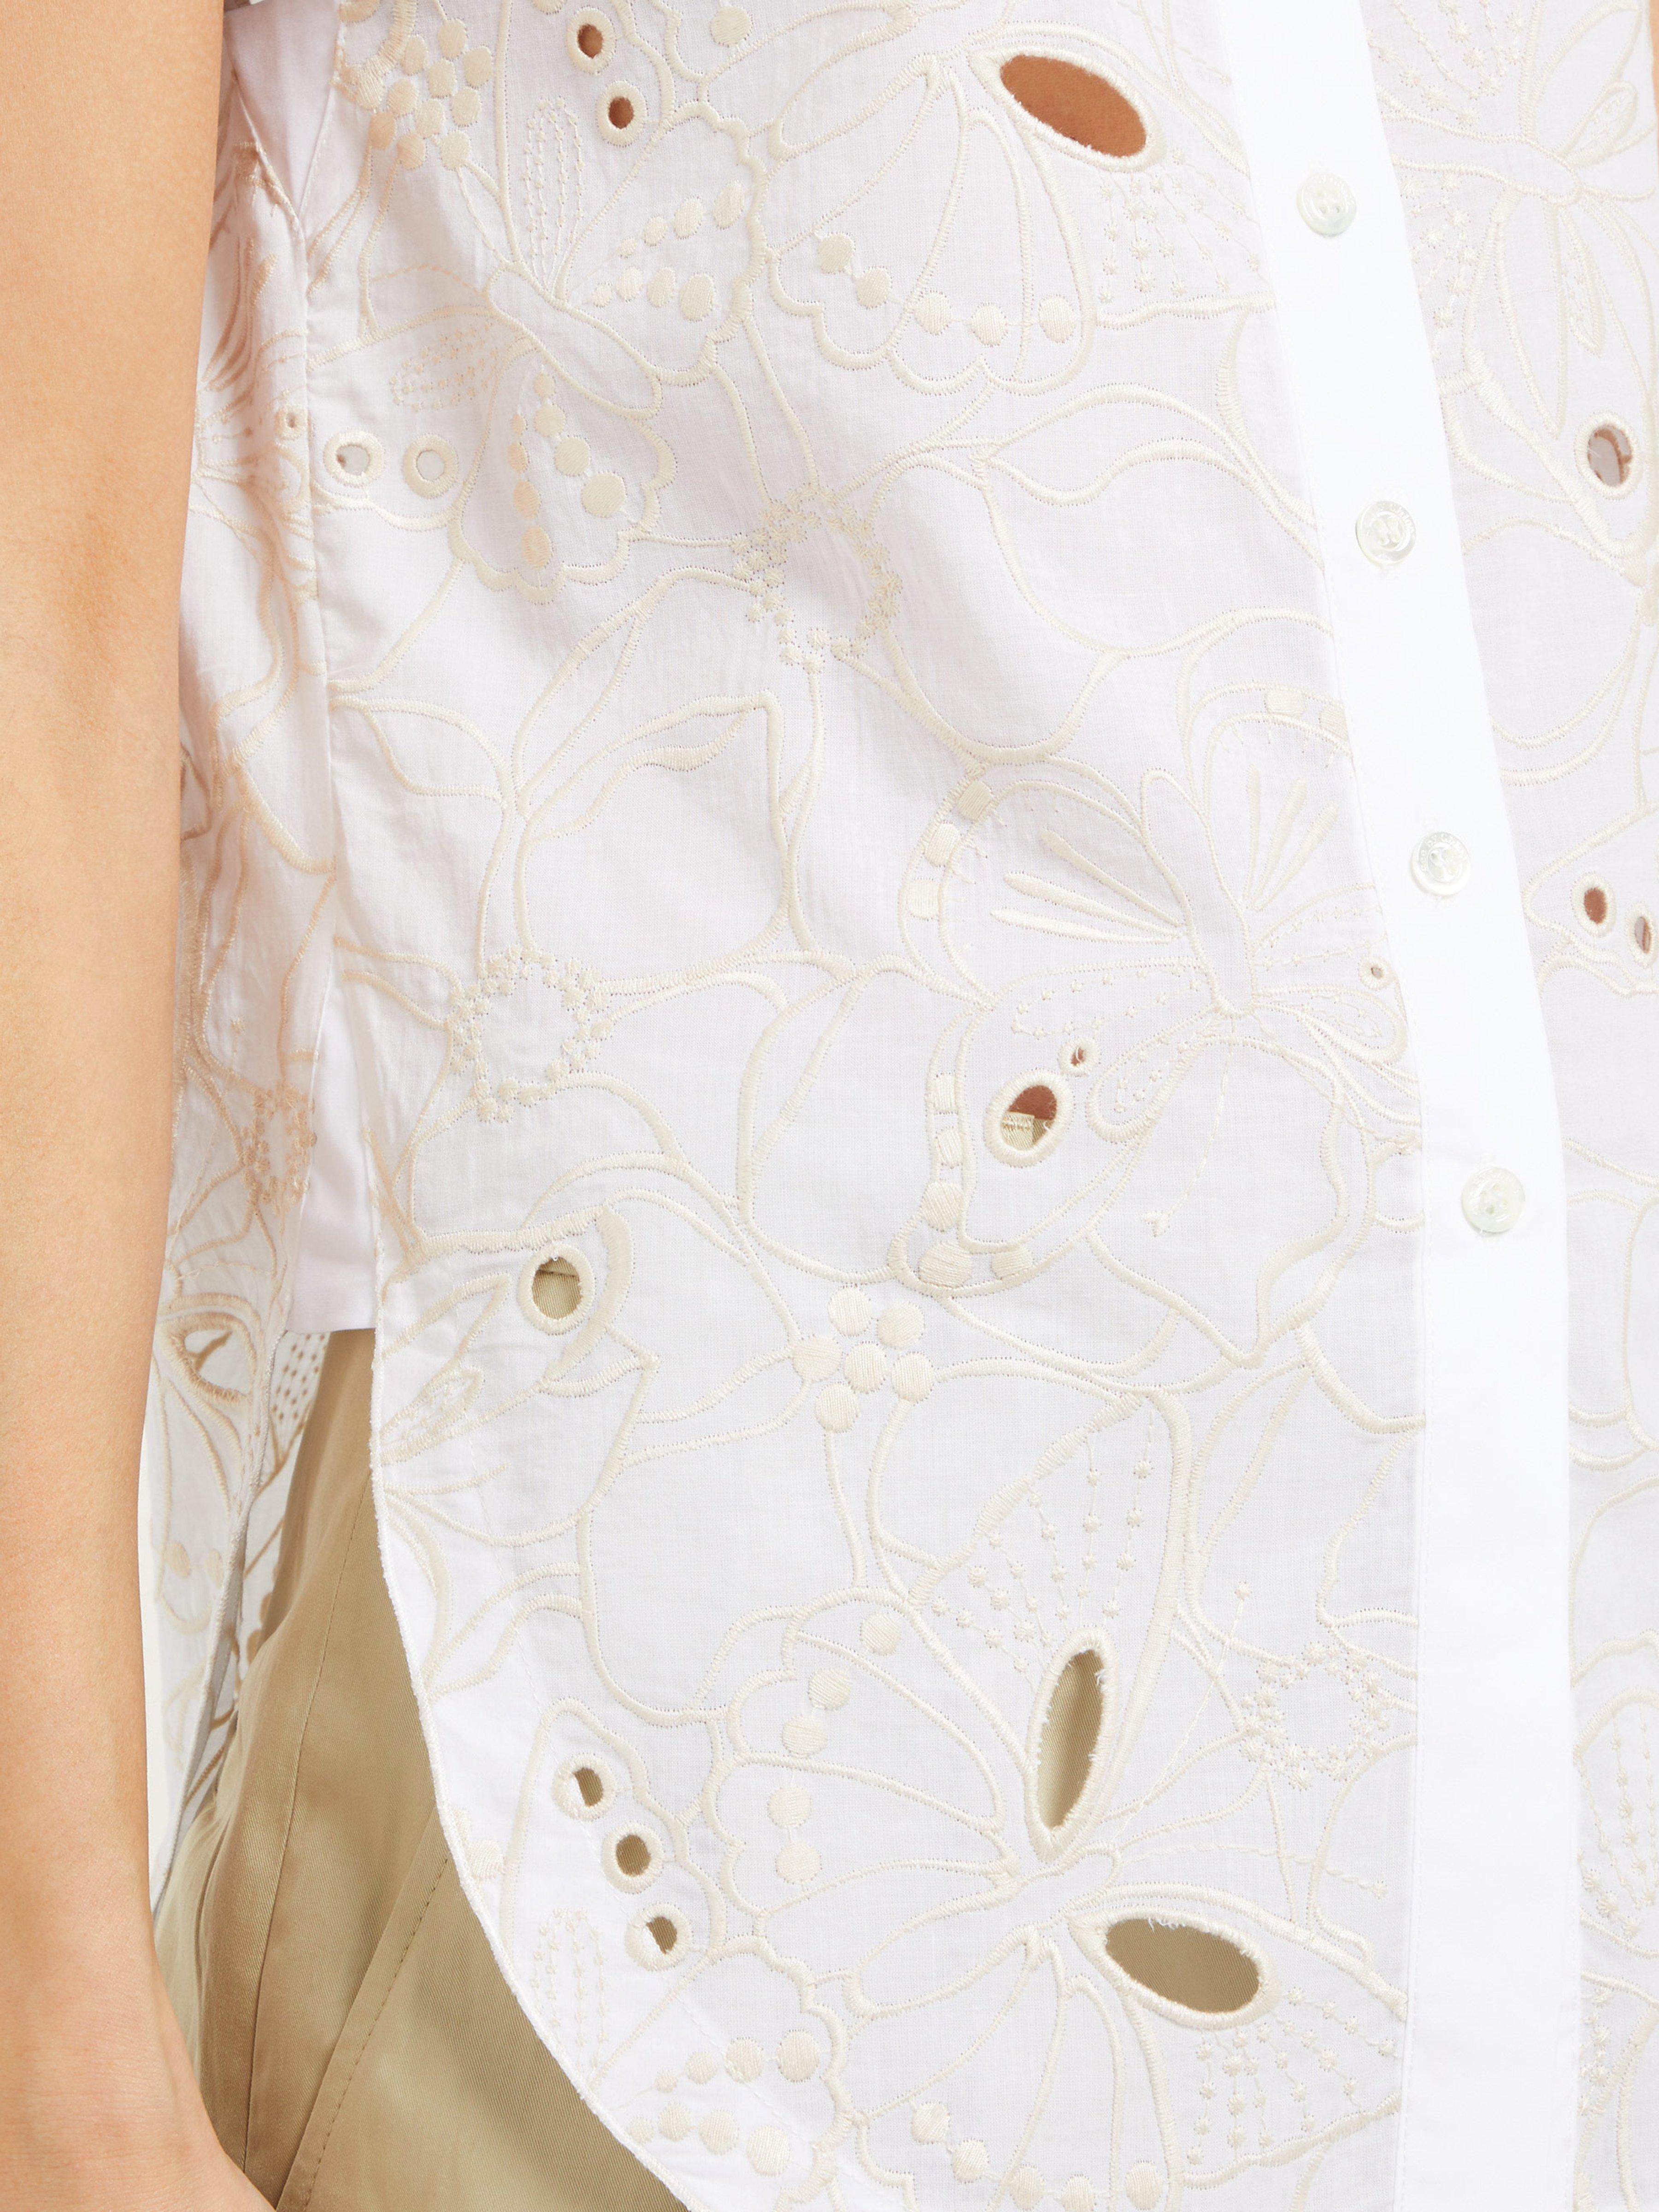 427ac9fc Women's White Summer Floral Broderie Anglaise Cotton Shirt